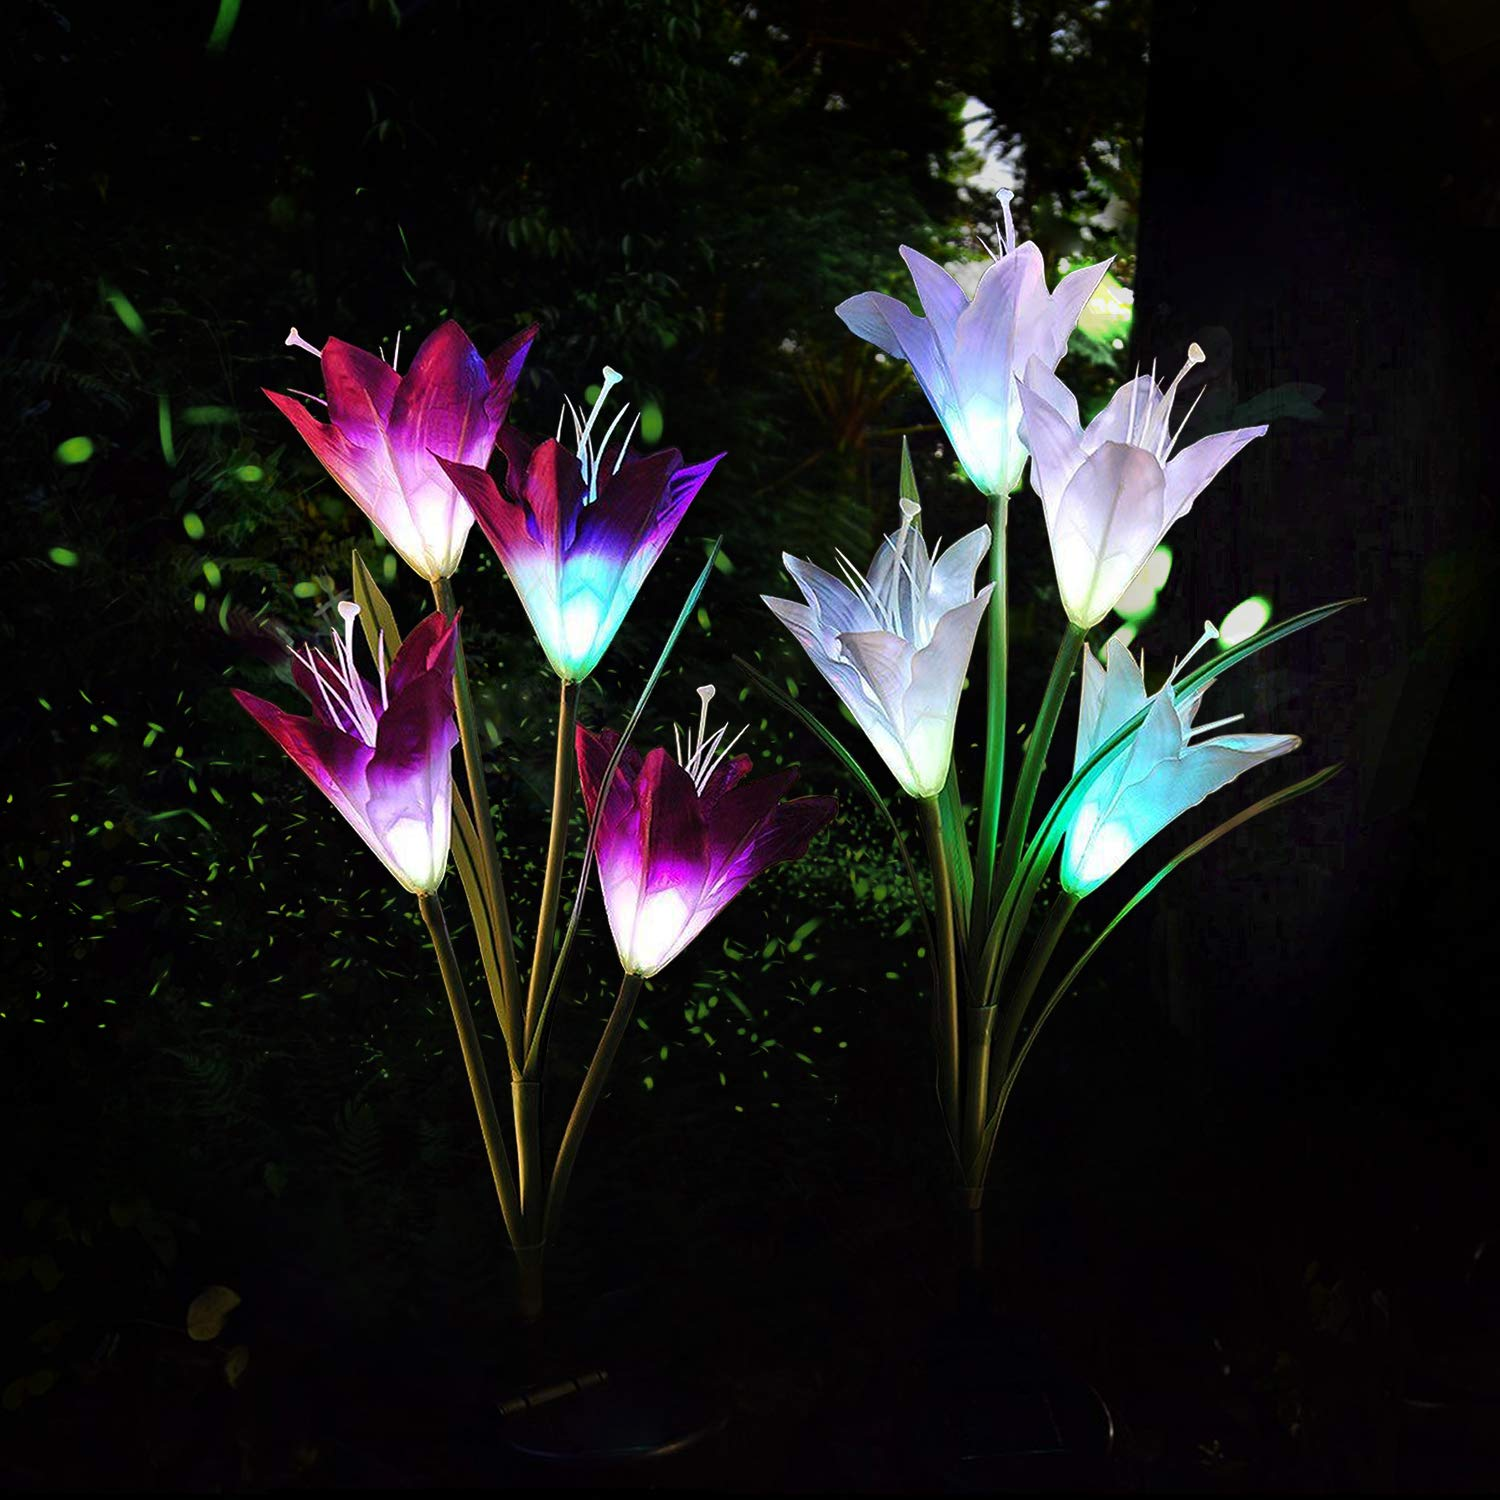 Solar Light Flower, 2 Pack Garden Stake Lights Outdoor for Night Lighting, Solar Powered 7 Multi-Color Changing LED Landscape Lighting for Decorating The Path, Yard, Lawn,Patio